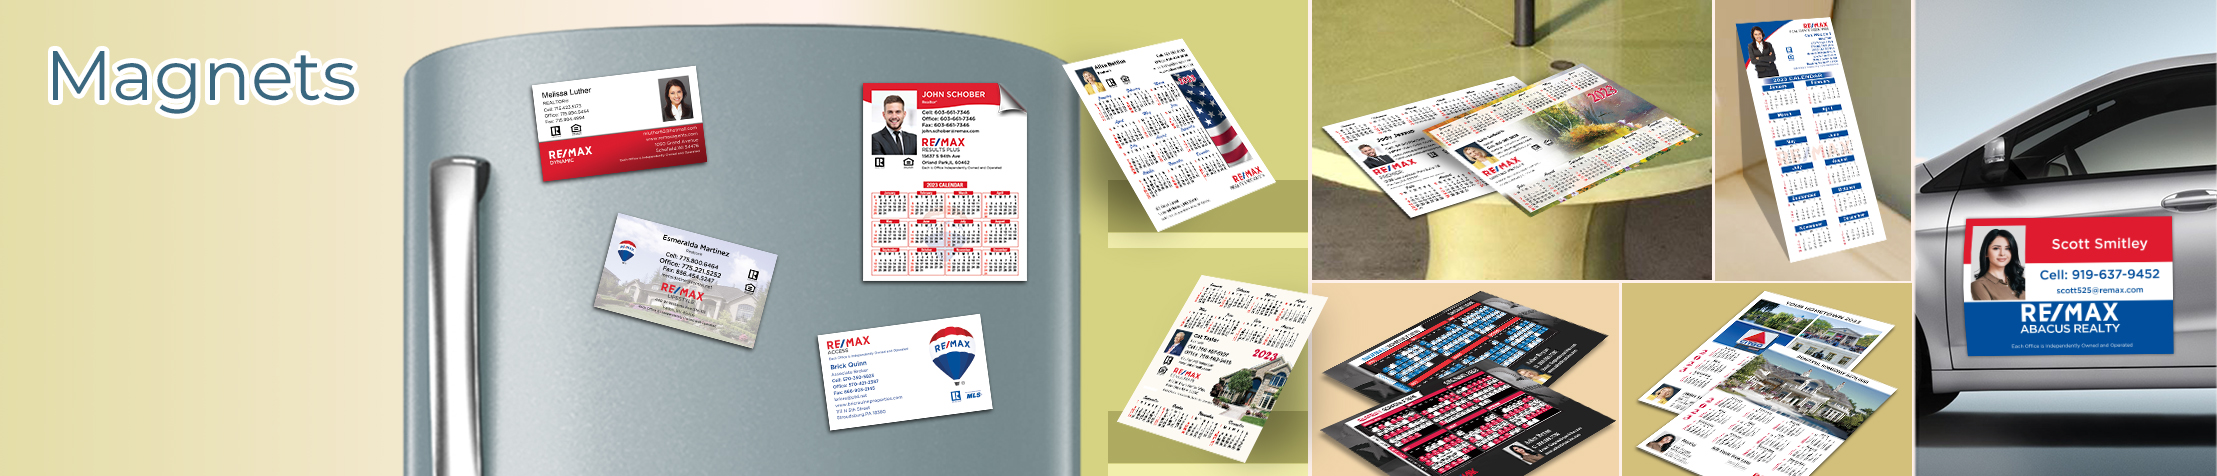 RE/MAX Real Estate Magnets - RE/MAX car magnets, sports schedules, calendar magnets | BestPrintBuy.com